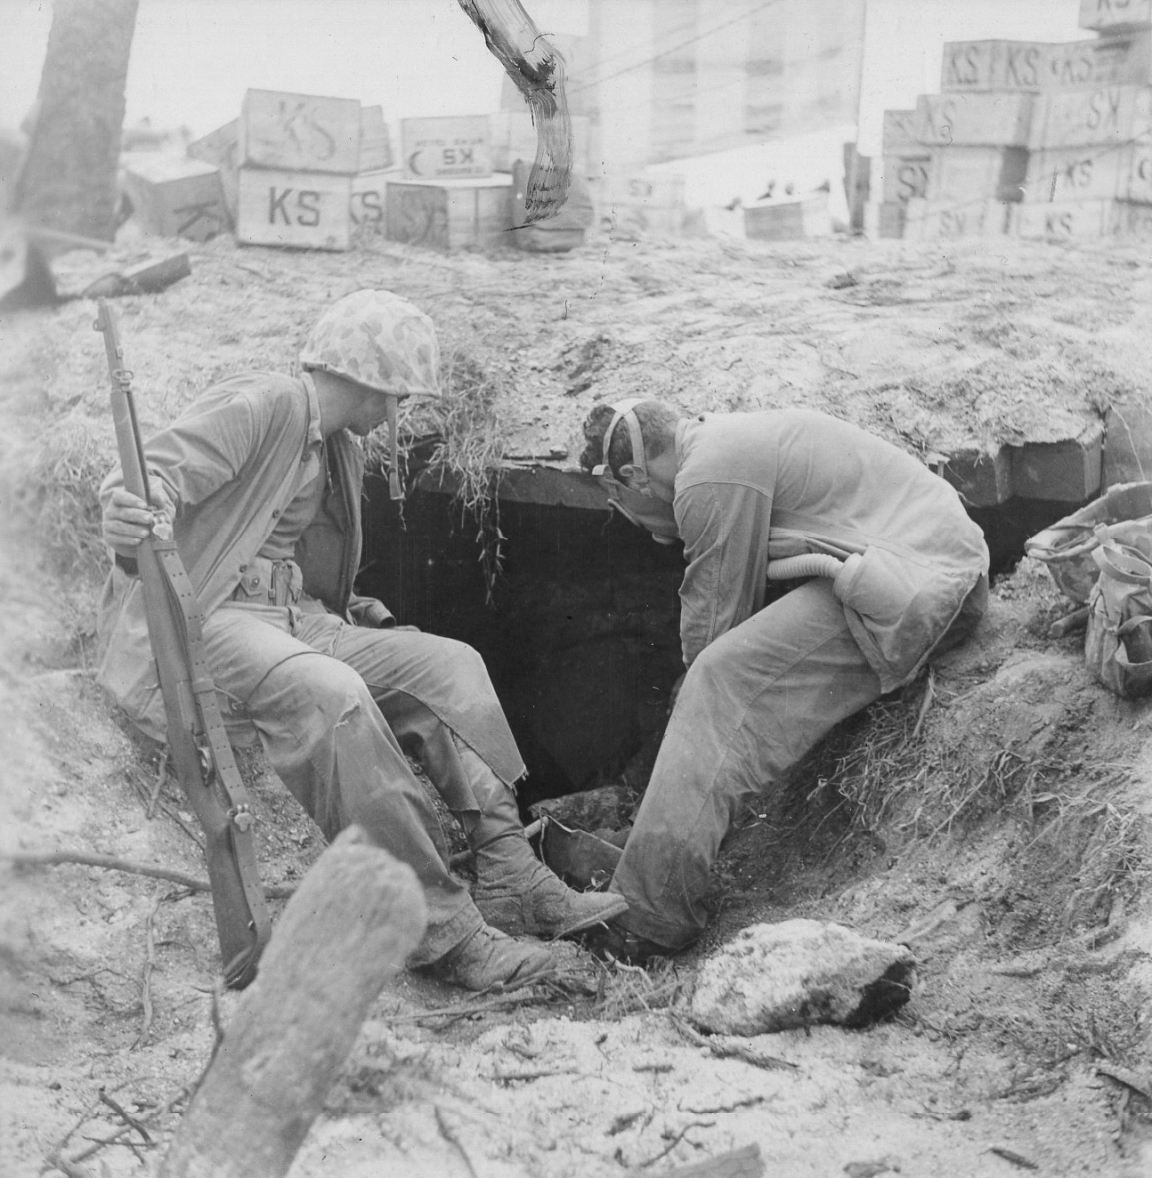 Searching for bodies on Namur. Note gas mask worn by Marine at right.